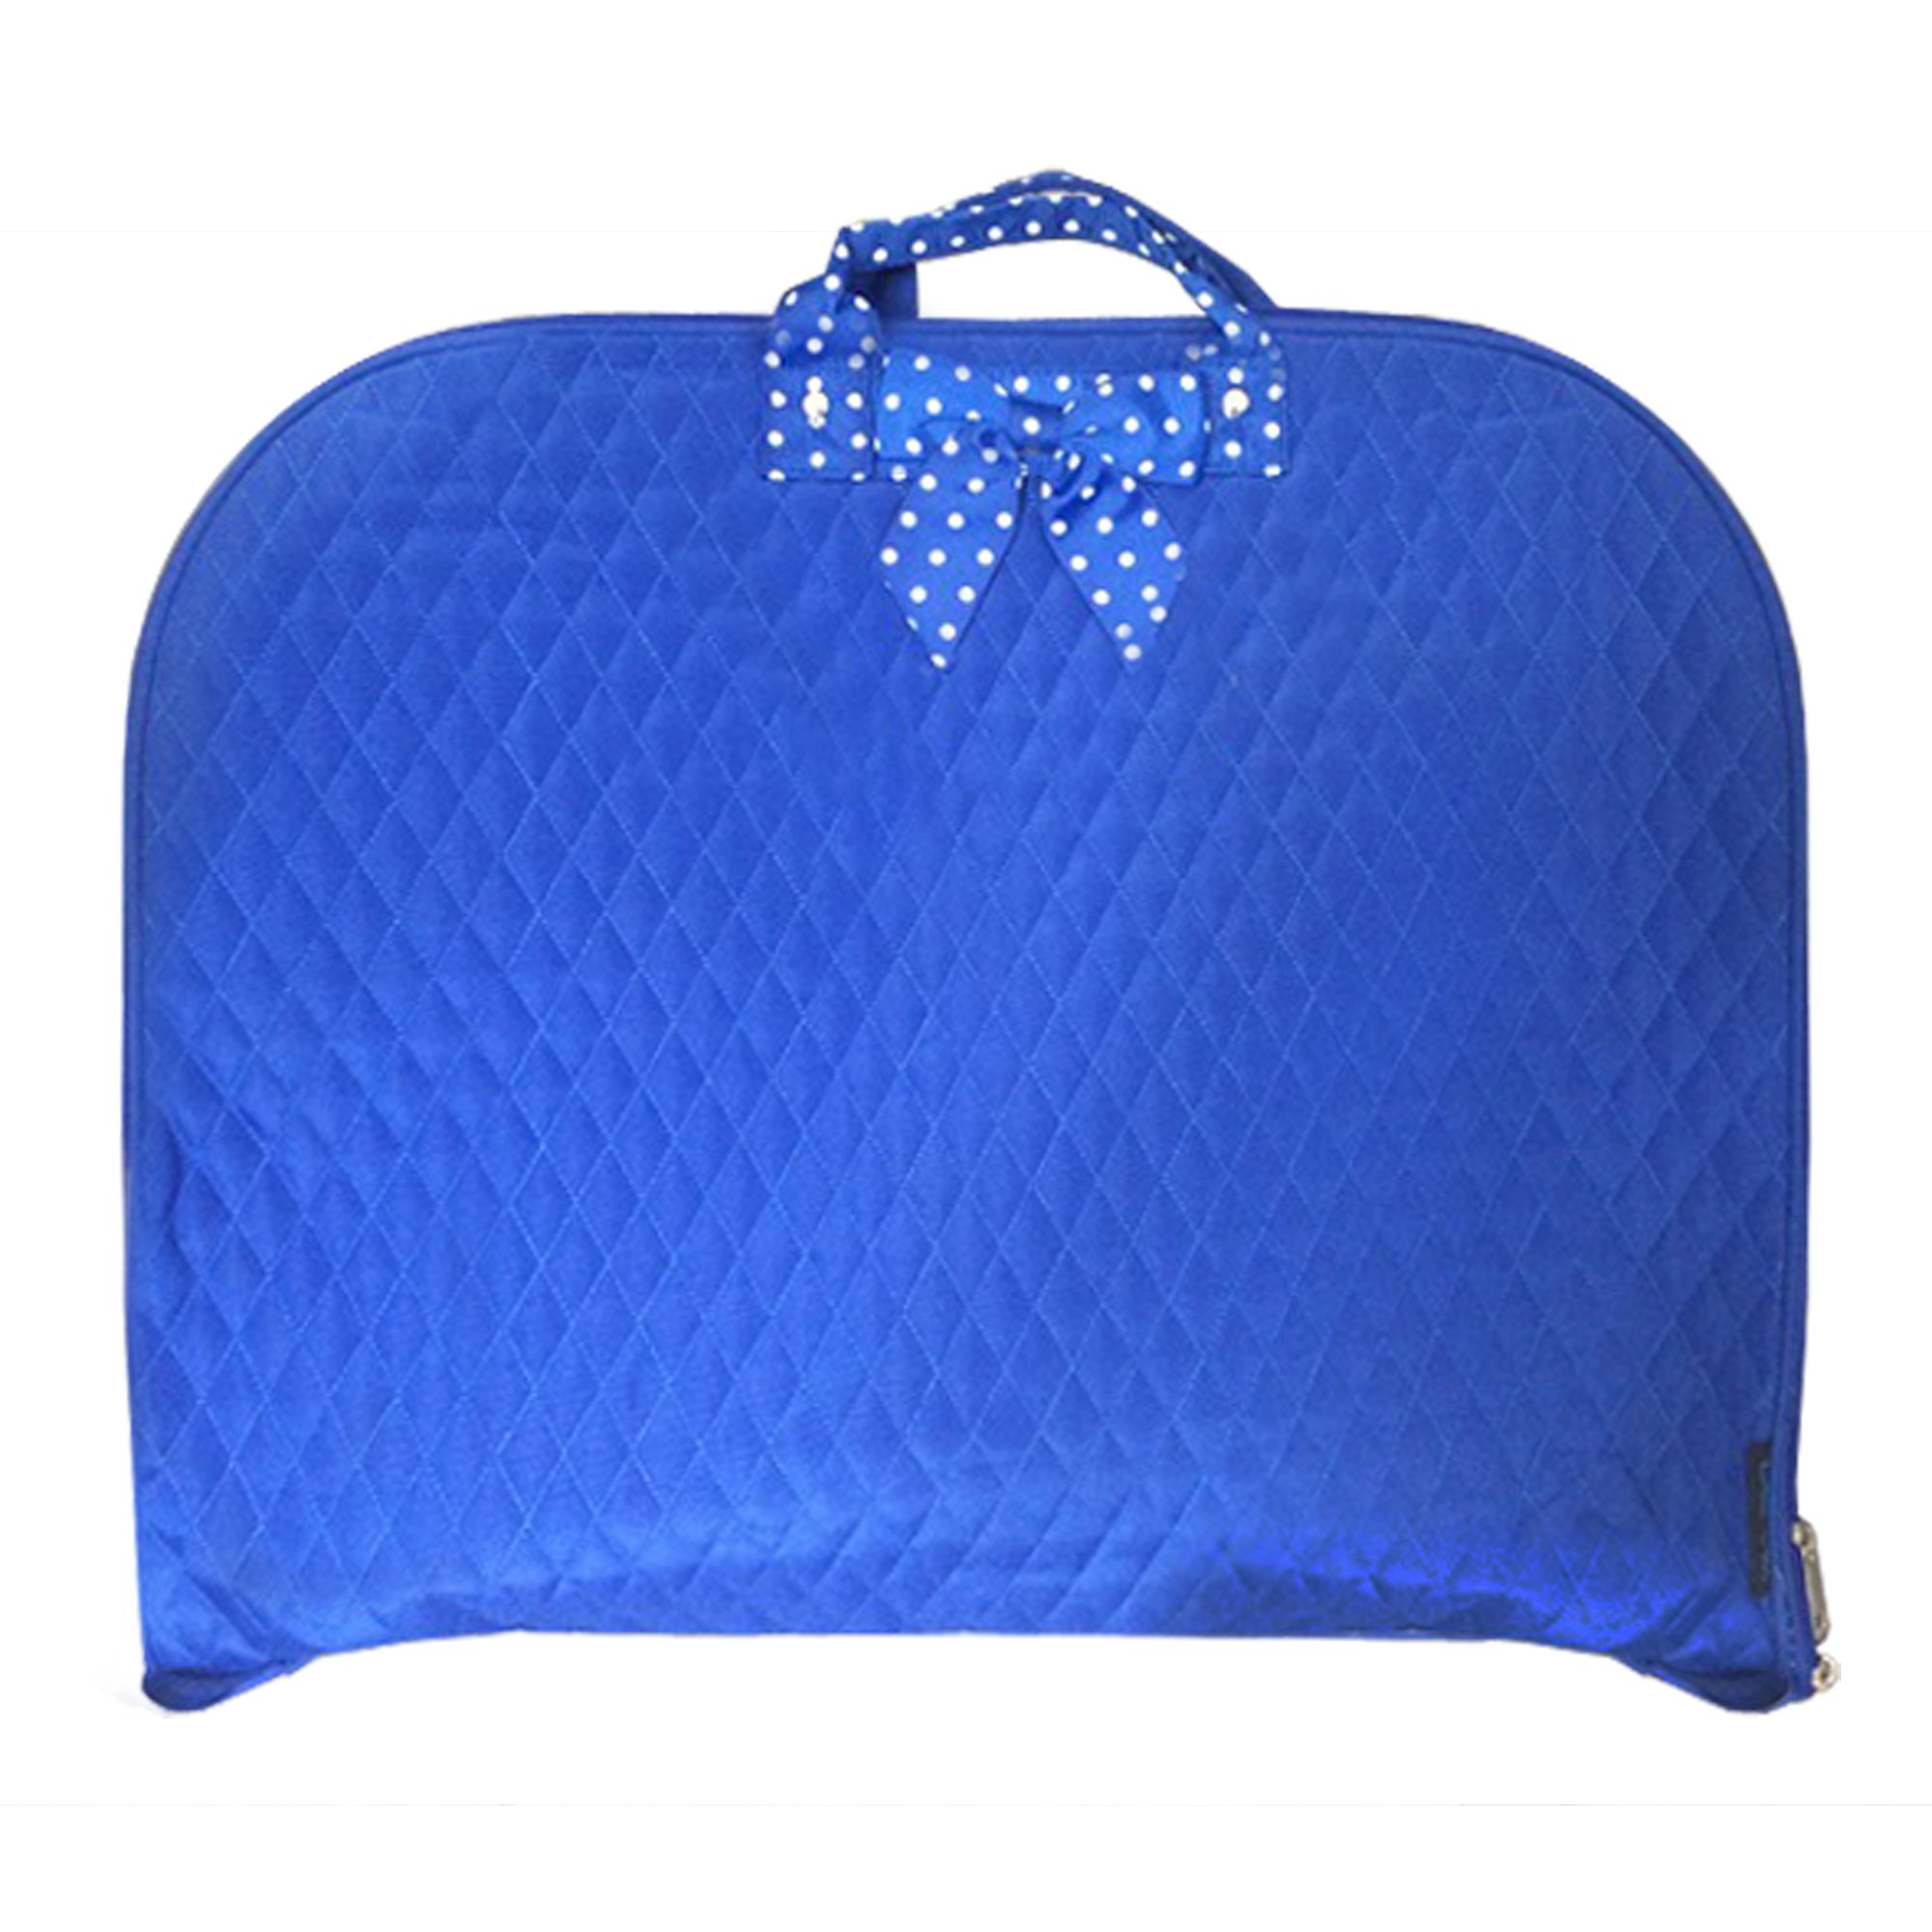 TOP QUALITY Quilted Garment Bag Luggage Travel or Costume Bag (Blue)